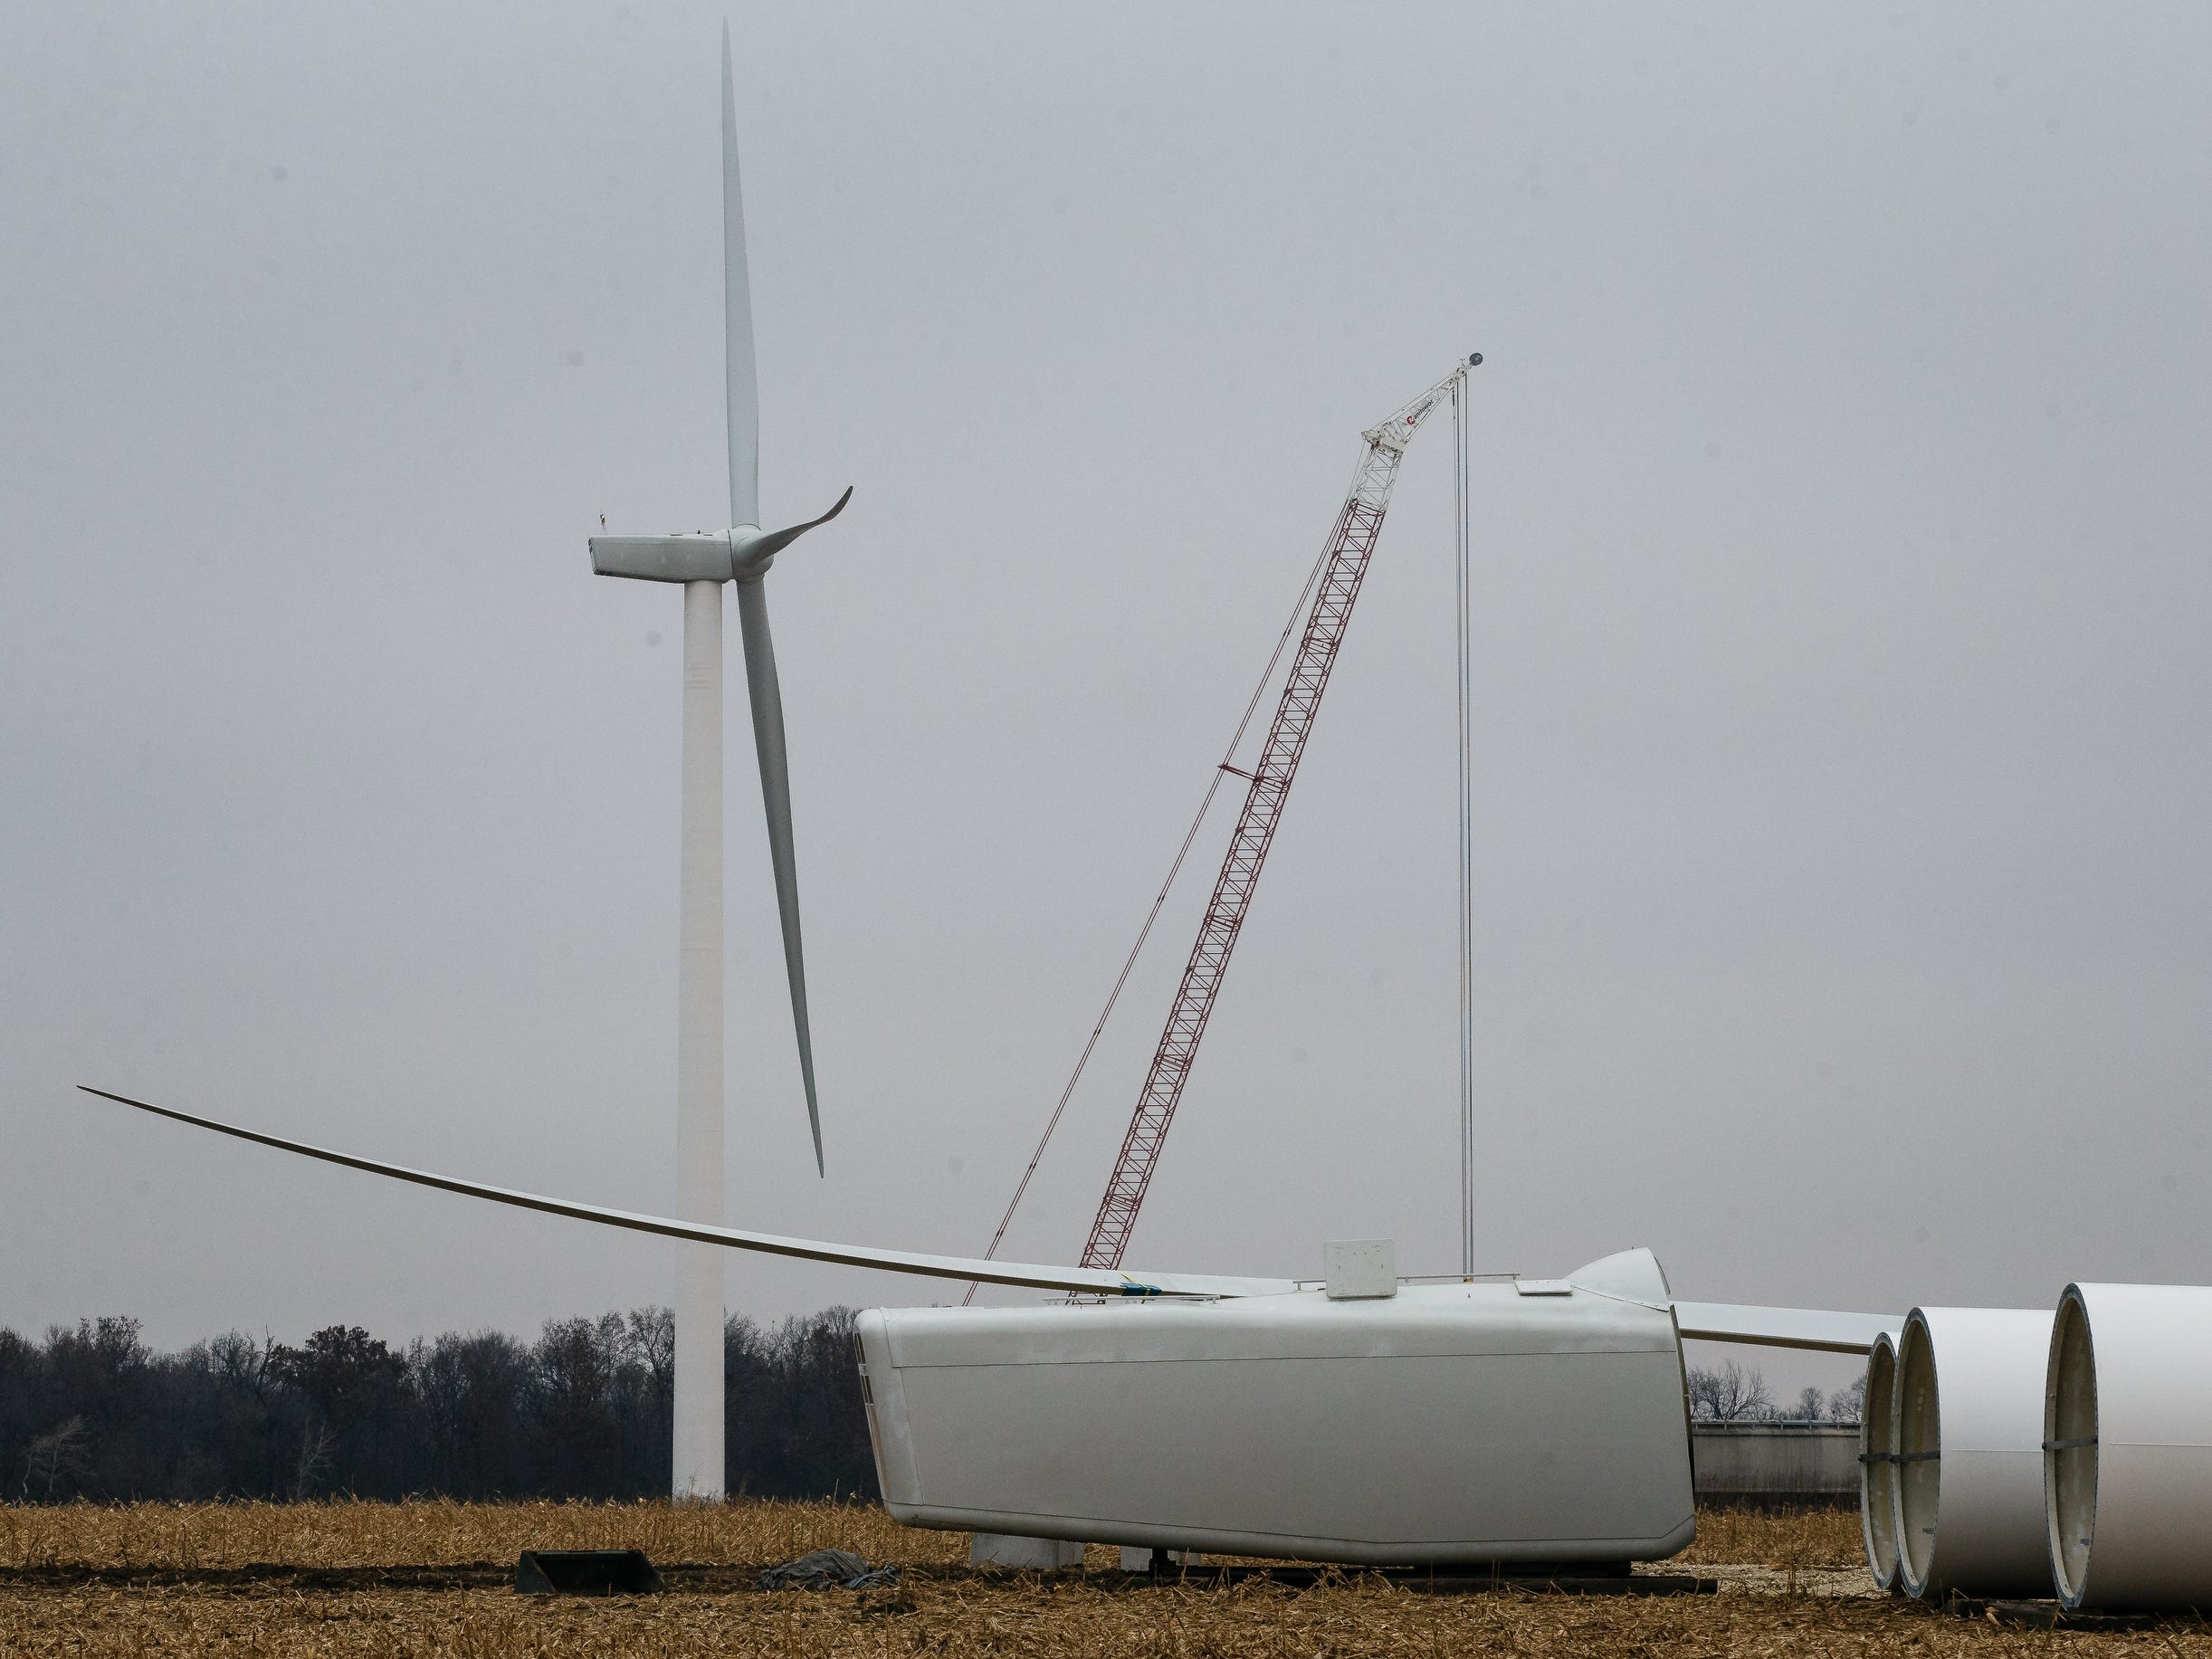 One of three wind turbines sits deconstructed in a field outside of Fairbank on Friday, Nov. 16, 2018. A district court judge ordered three wind turbines to be dismantled after deciding that Fayette county provided the developers permits illegally in 2014 who now have until December 9th to bring them all down.